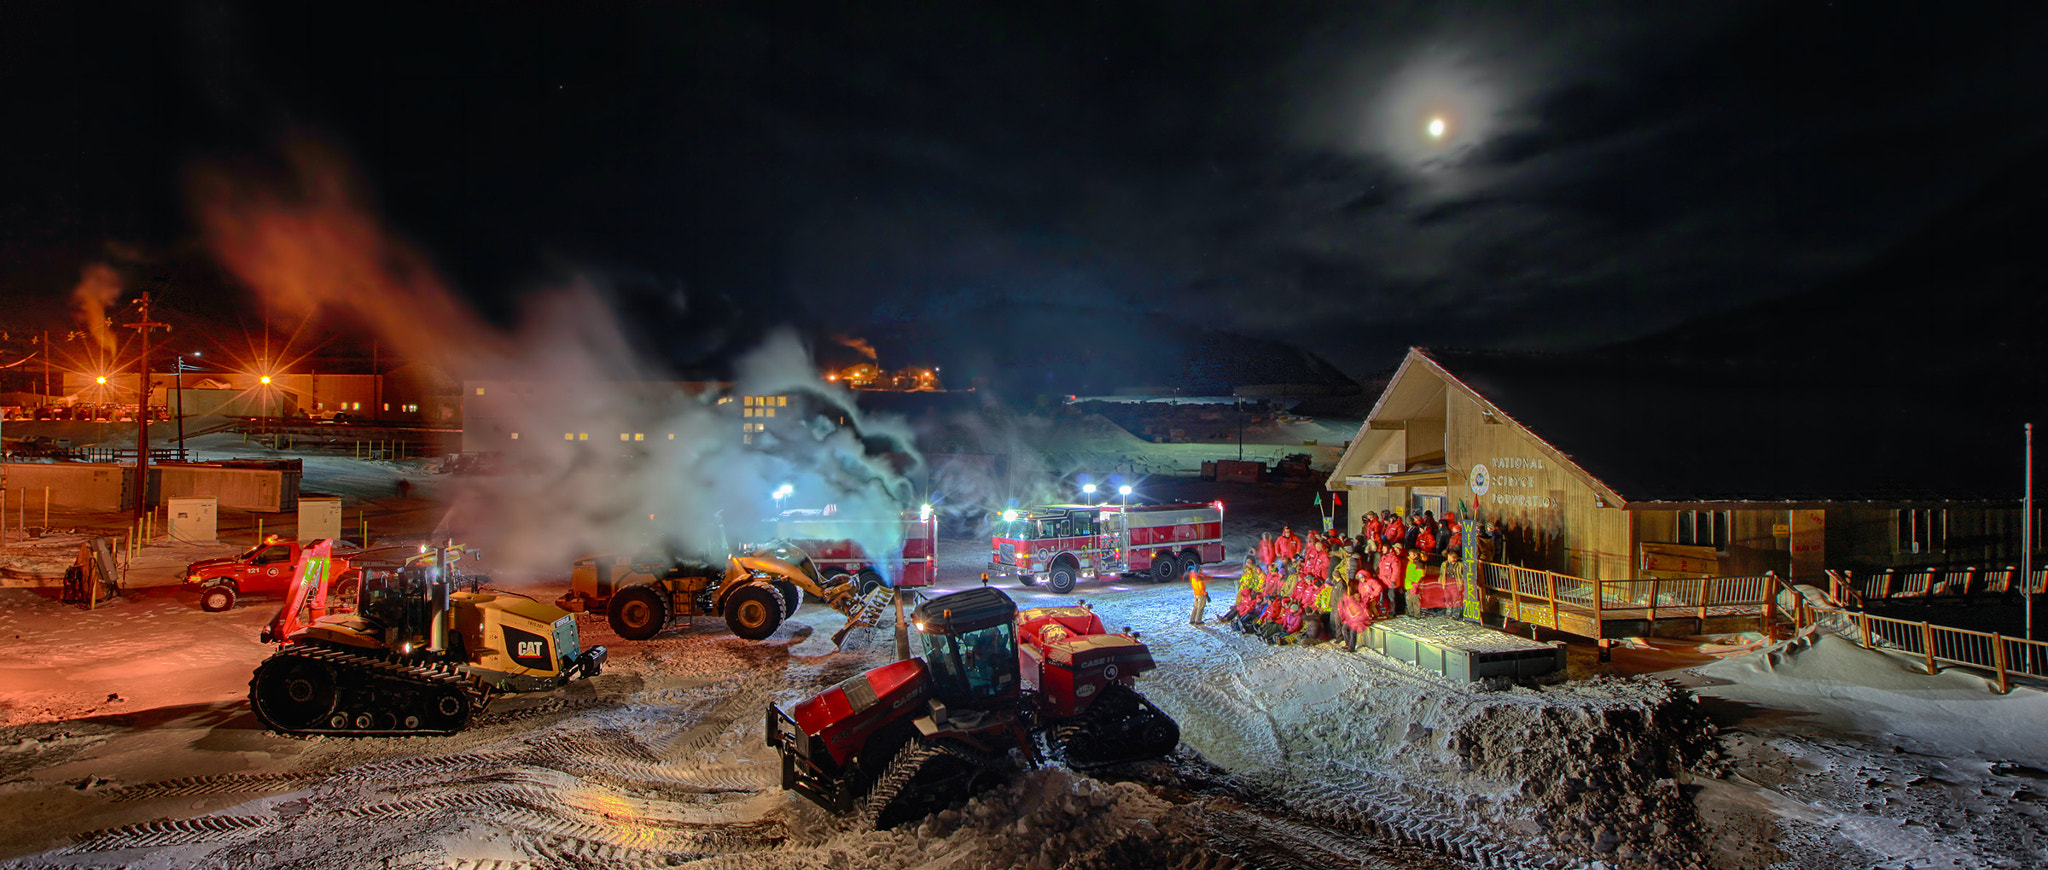 Photograph Panorama of McMurdo Station Photo by Deven Stross on 500px